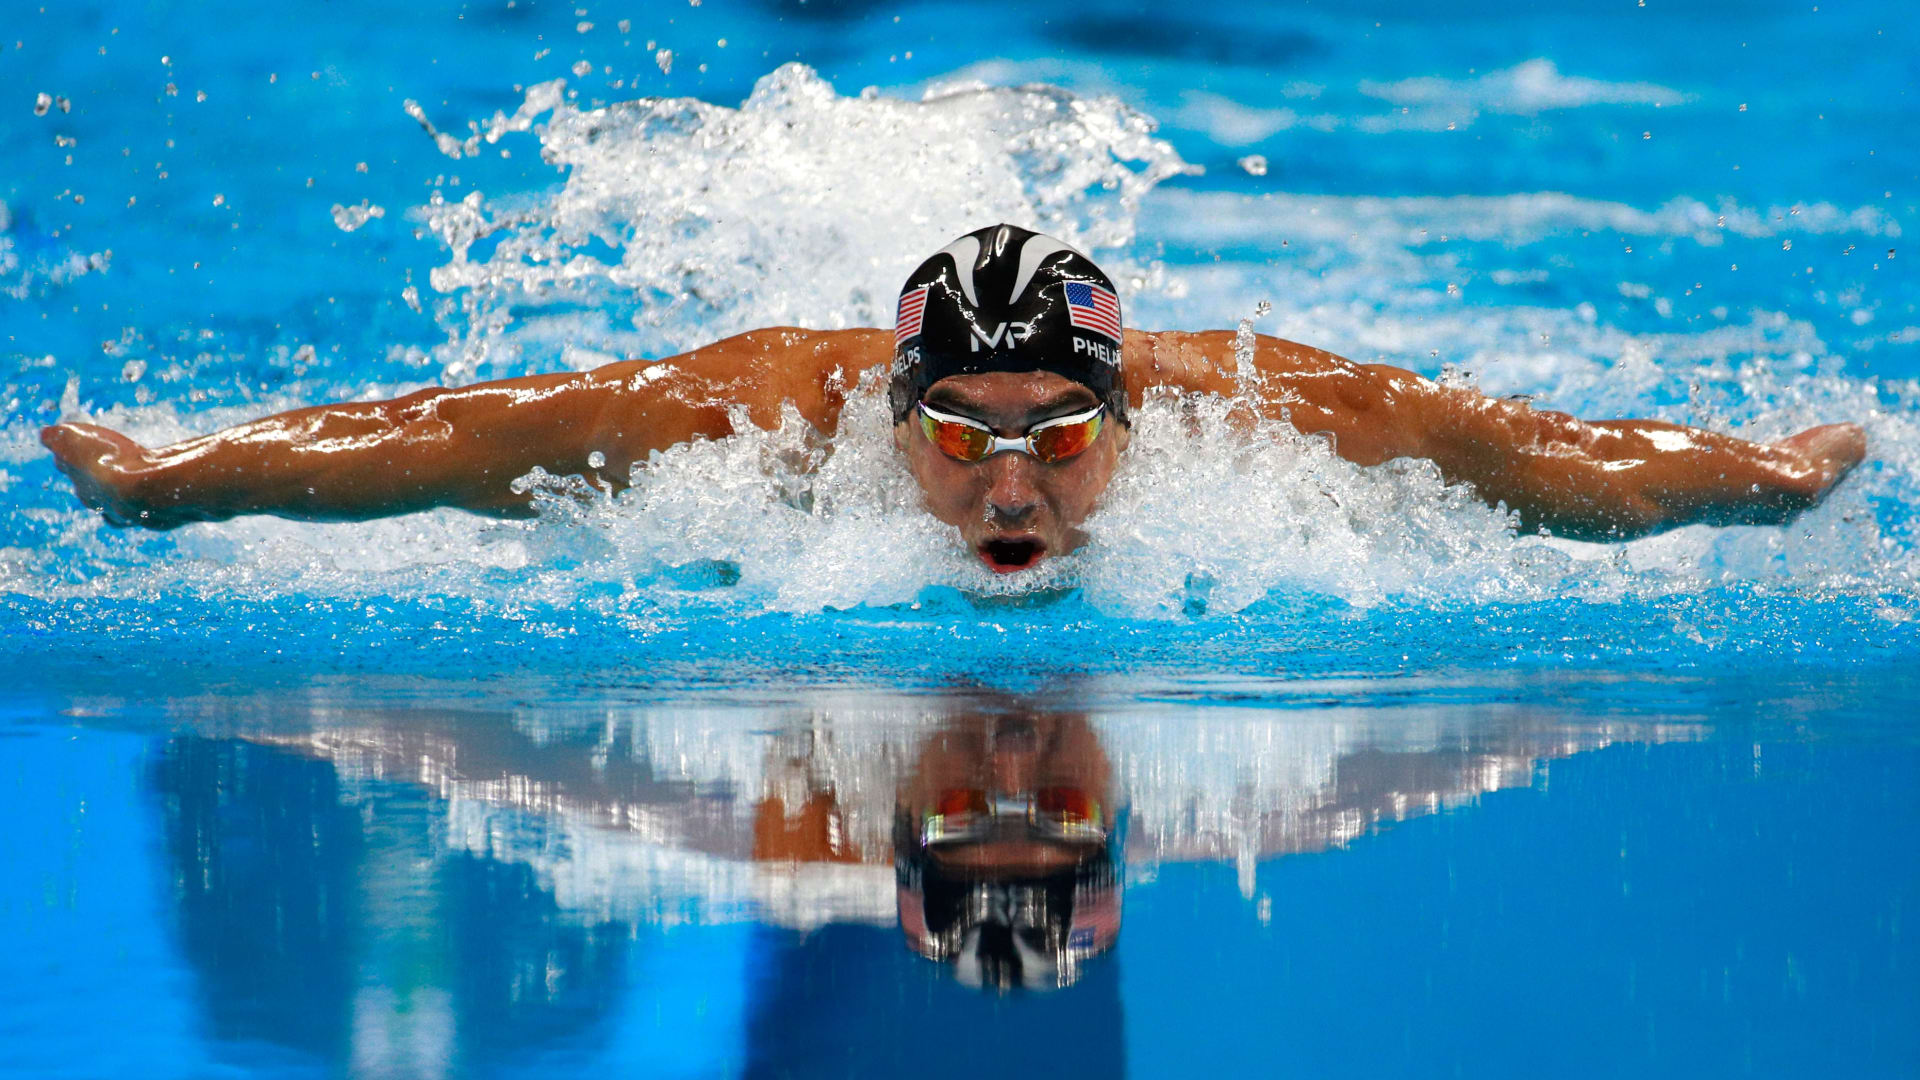 Michael Phelps' Olympic medals: A complete guide to how they were won